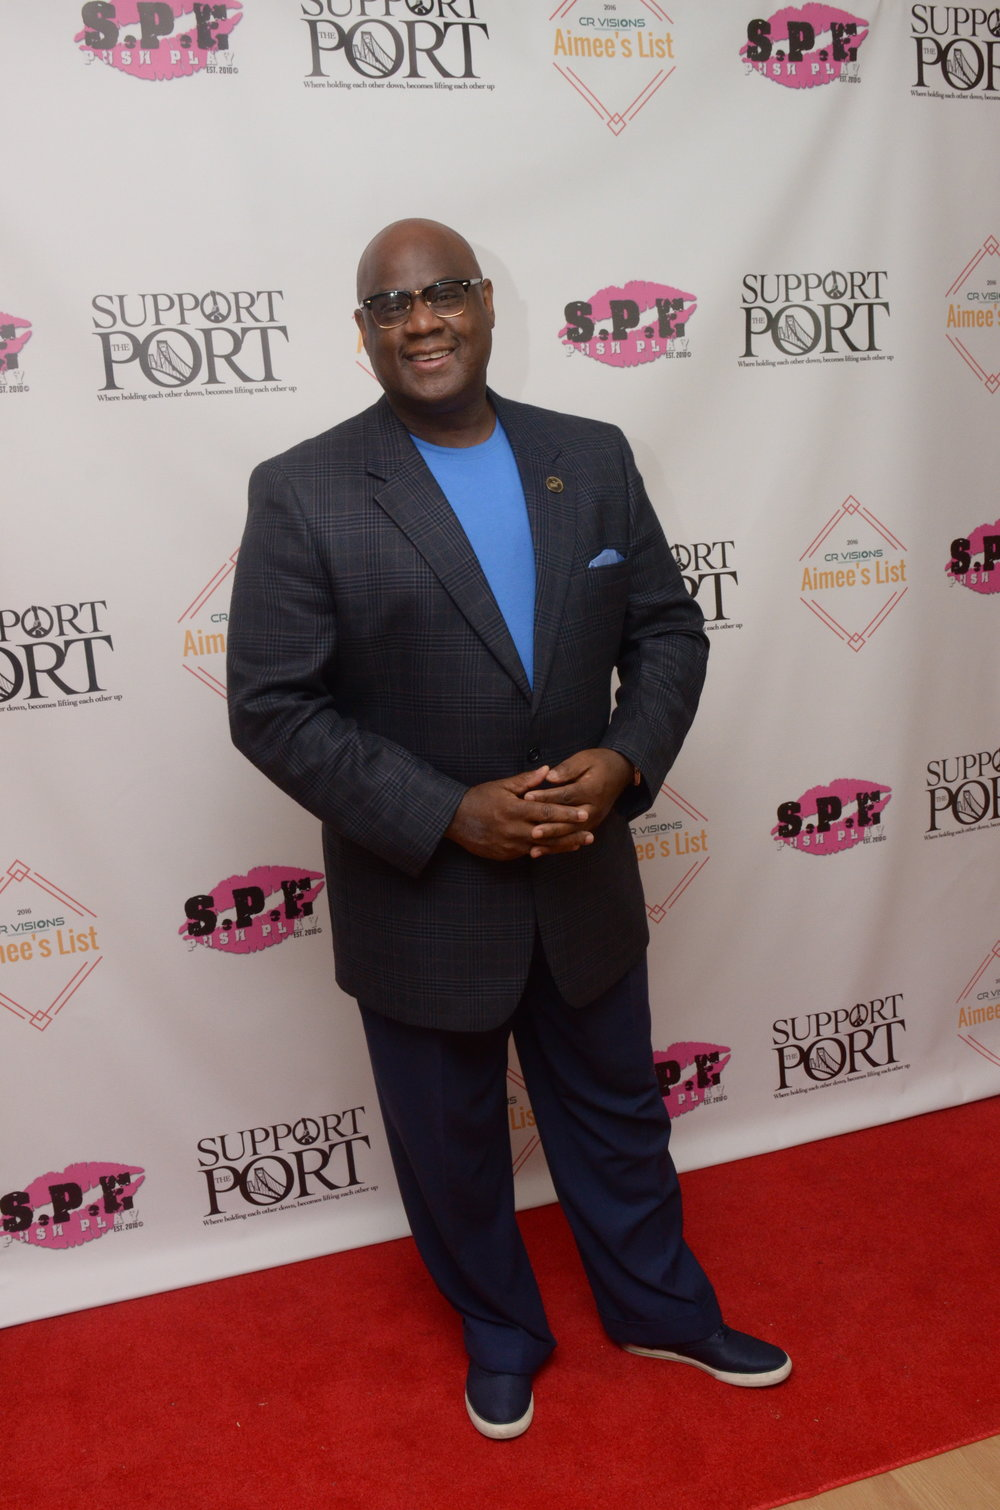 Pastor Campbell Of New Beginning Christian Church at Support The Port's Supportflix And Chill Red Carpet Premiere for Aimee's List